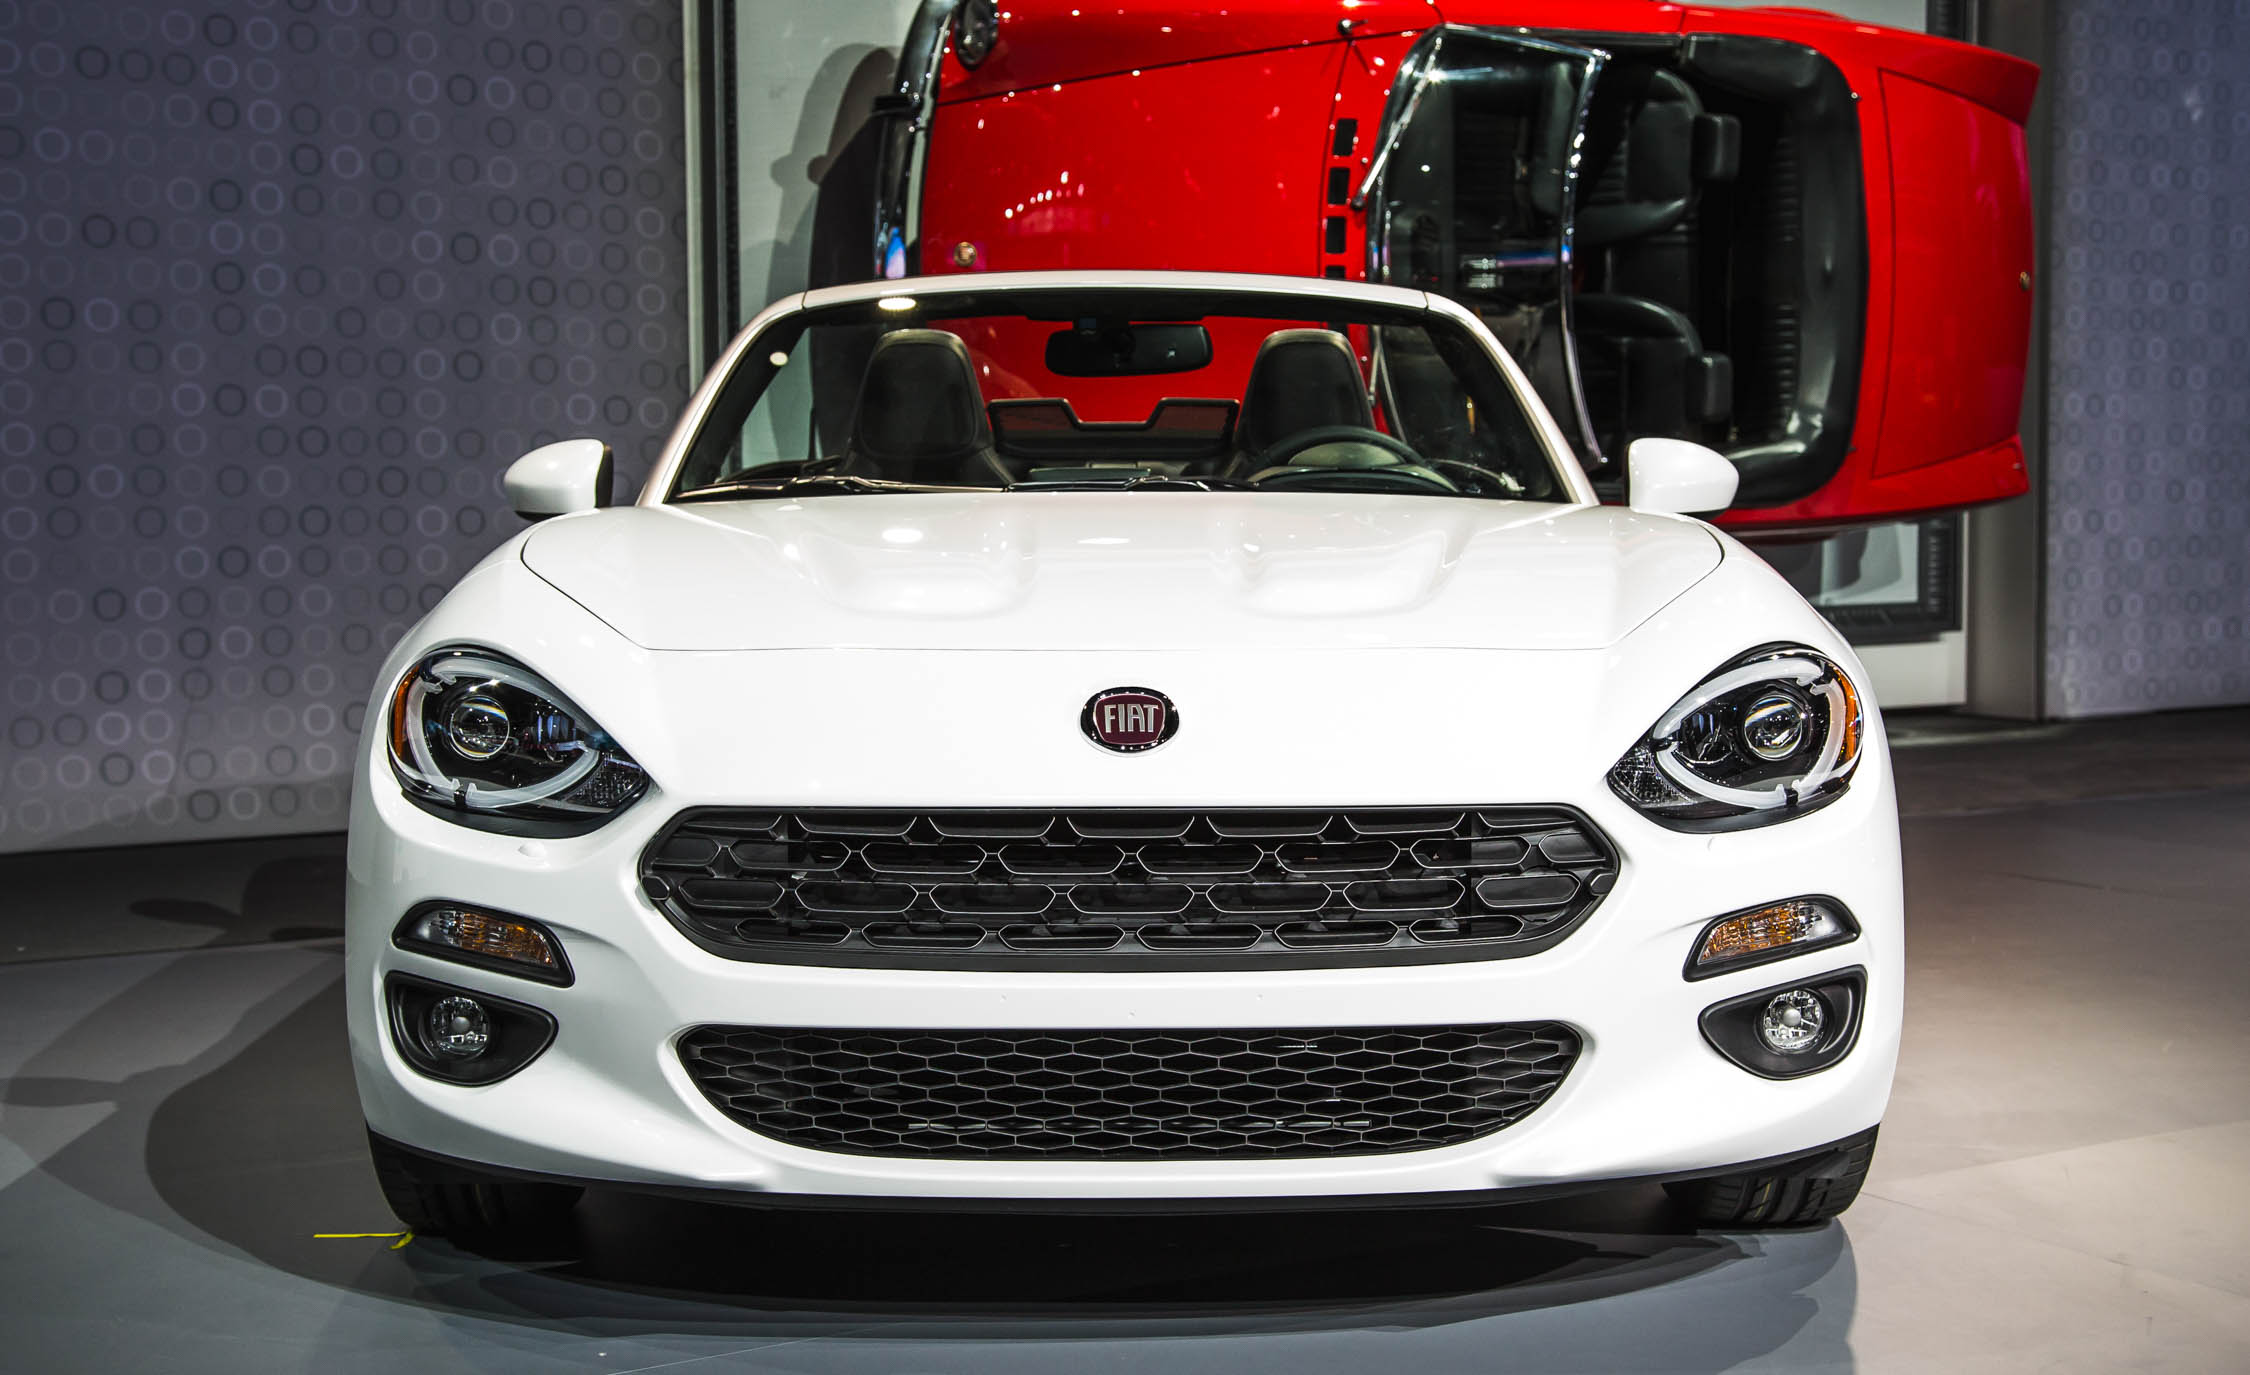 2017 Fiat 124 Spider White Front End Exterior (Photo 22 of 23)